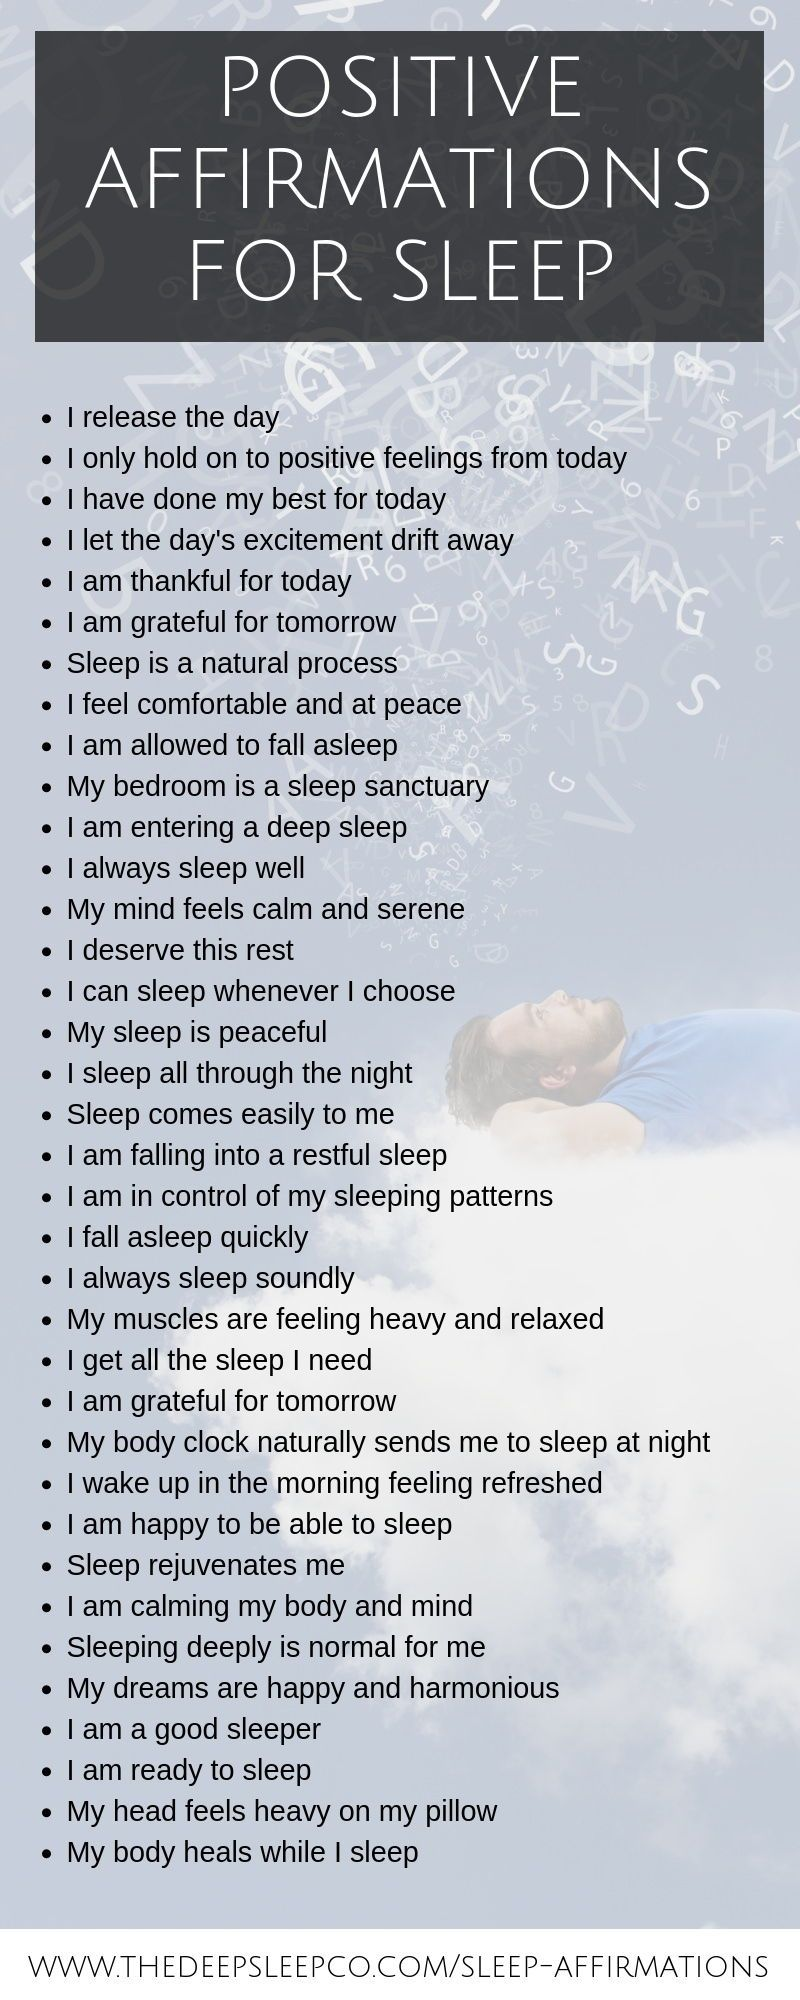 Positive sleep affirmations to help you get the perfect night's sleep